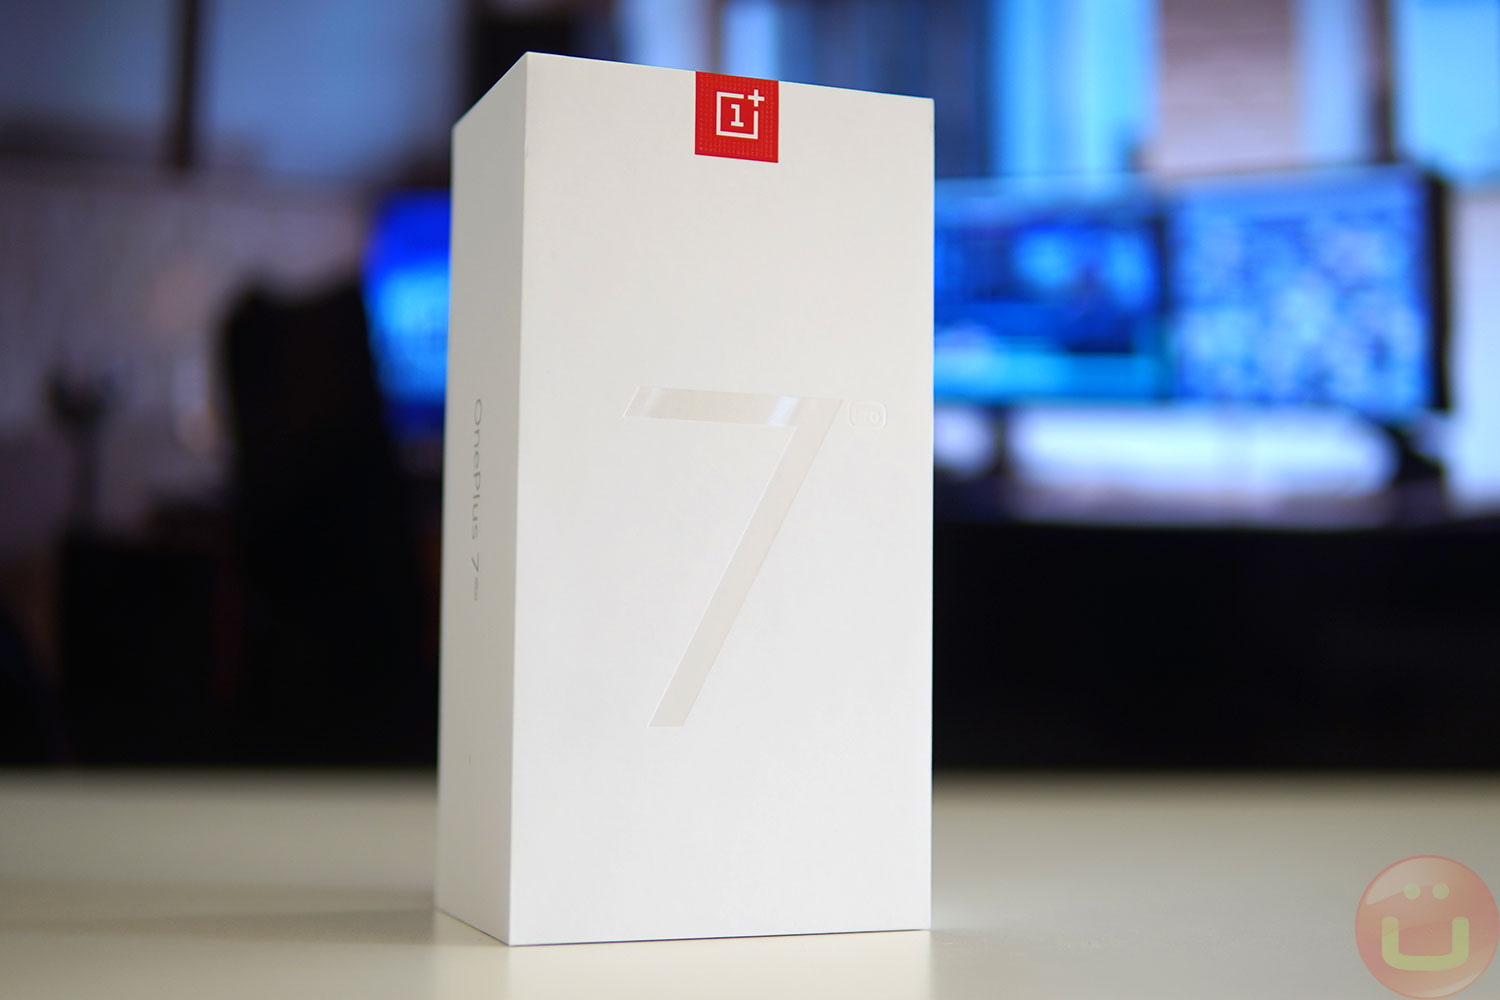 {focus_keyword} OnePlus TV To Come With A Bluetooth Remote Control - Ubergizmo oneplus 7 pro review 01